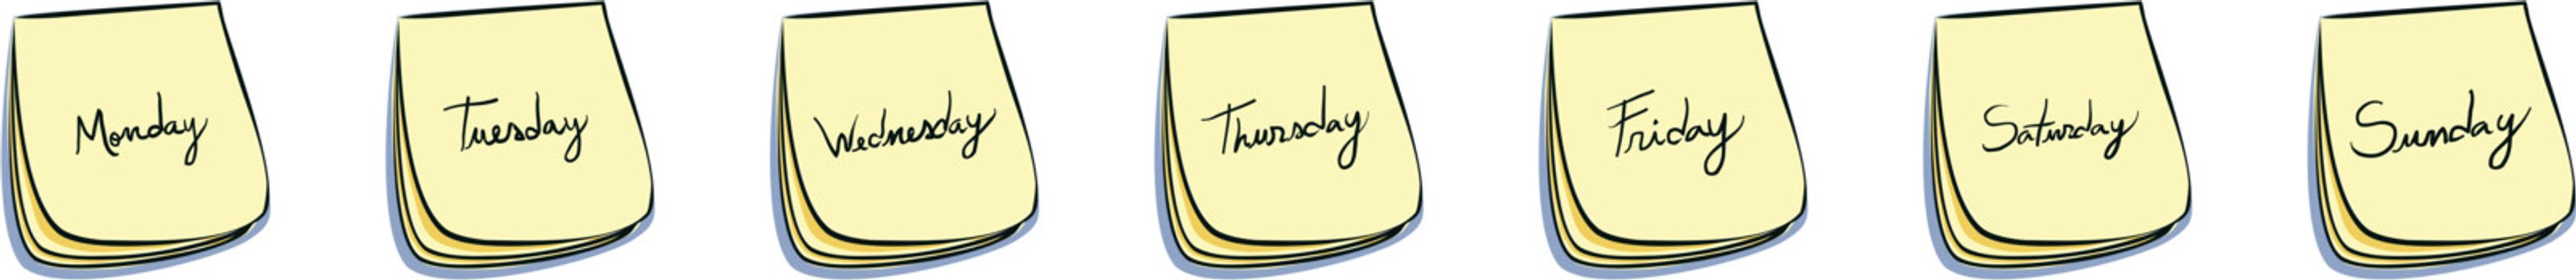 Daily Post-It Notes With Handwritten Days (Monday Through Sunday)